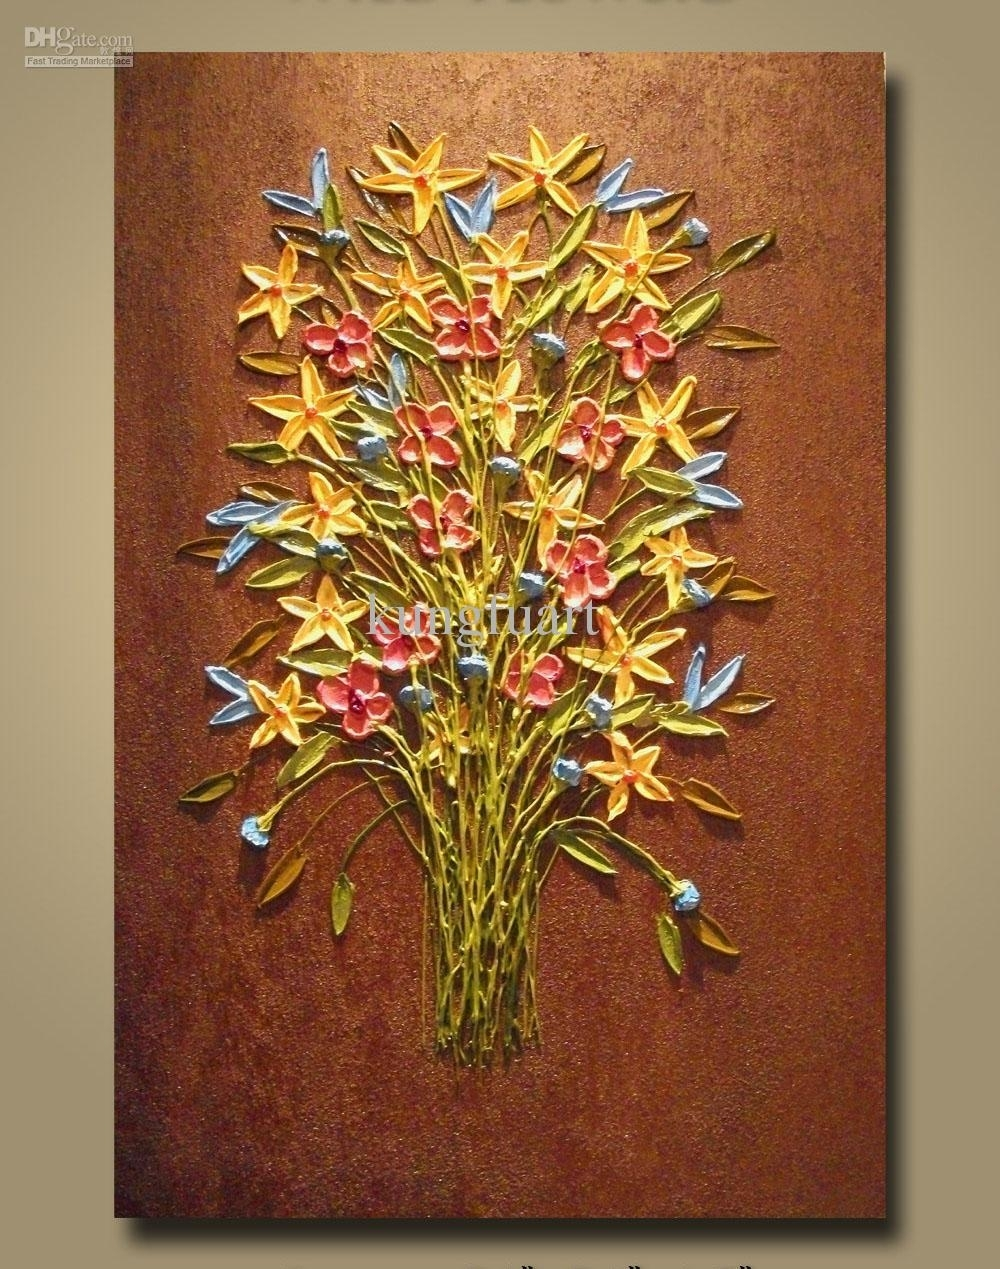 Wall Art Designs: Wall Art Paintings 100 Hand Painted Heavy With Regard To Most Current Hand Painted Canvas Wall Art (View 11 of 15)